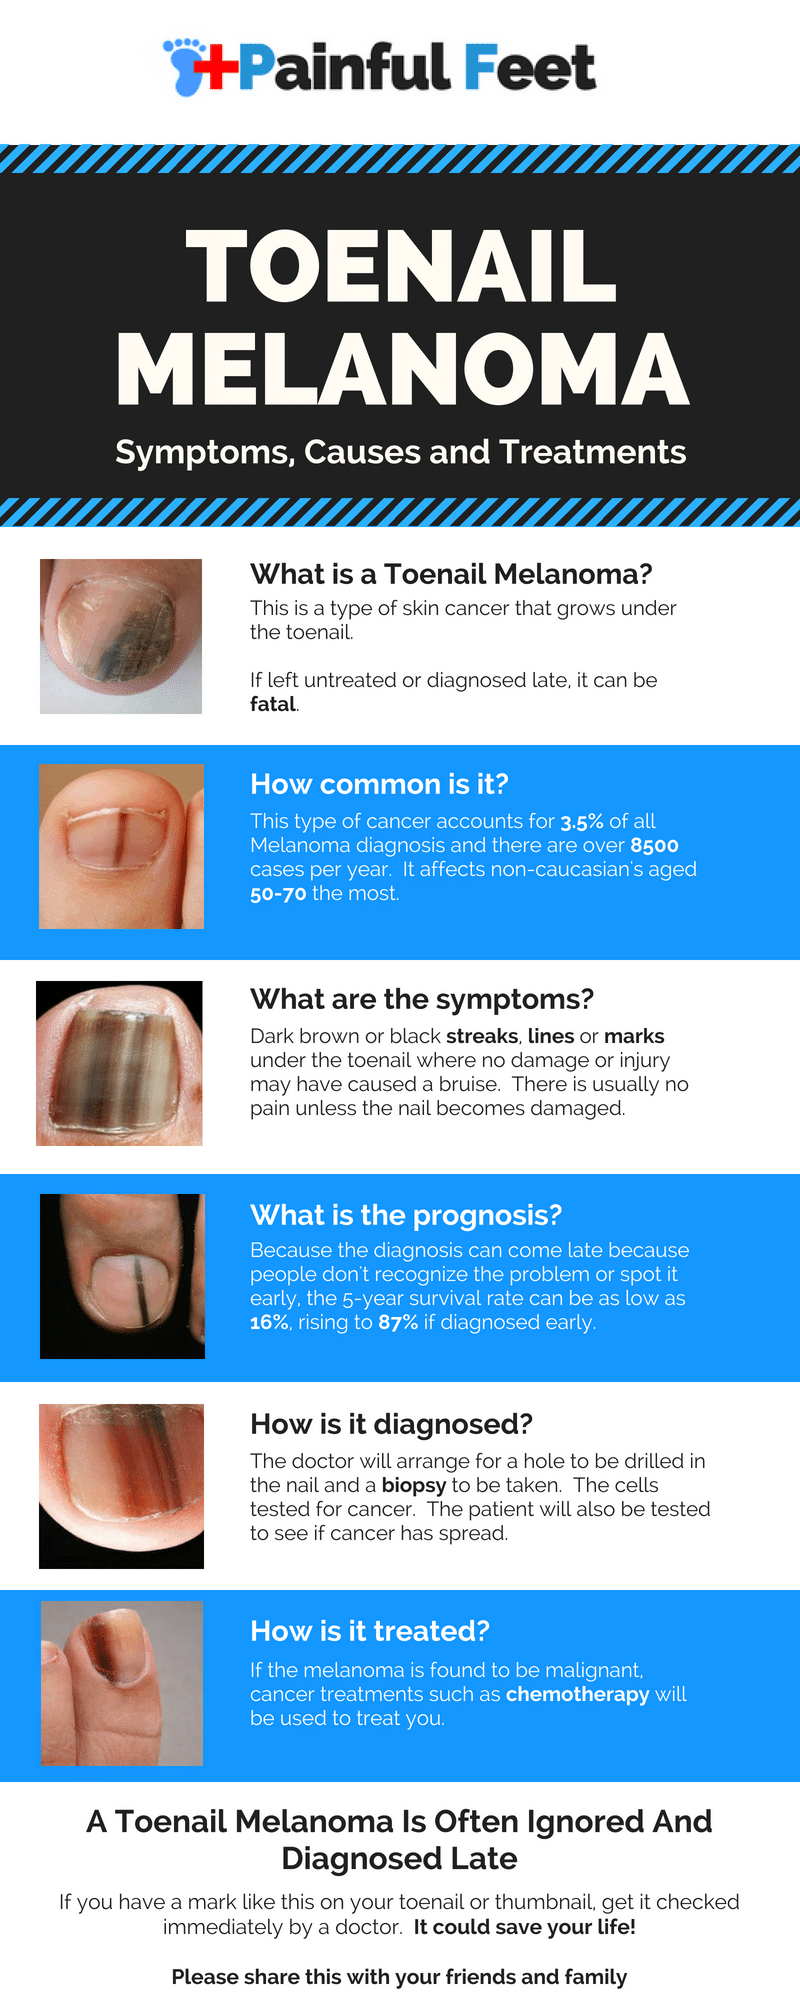 How to Tell If You Have a Toenail Melanoma